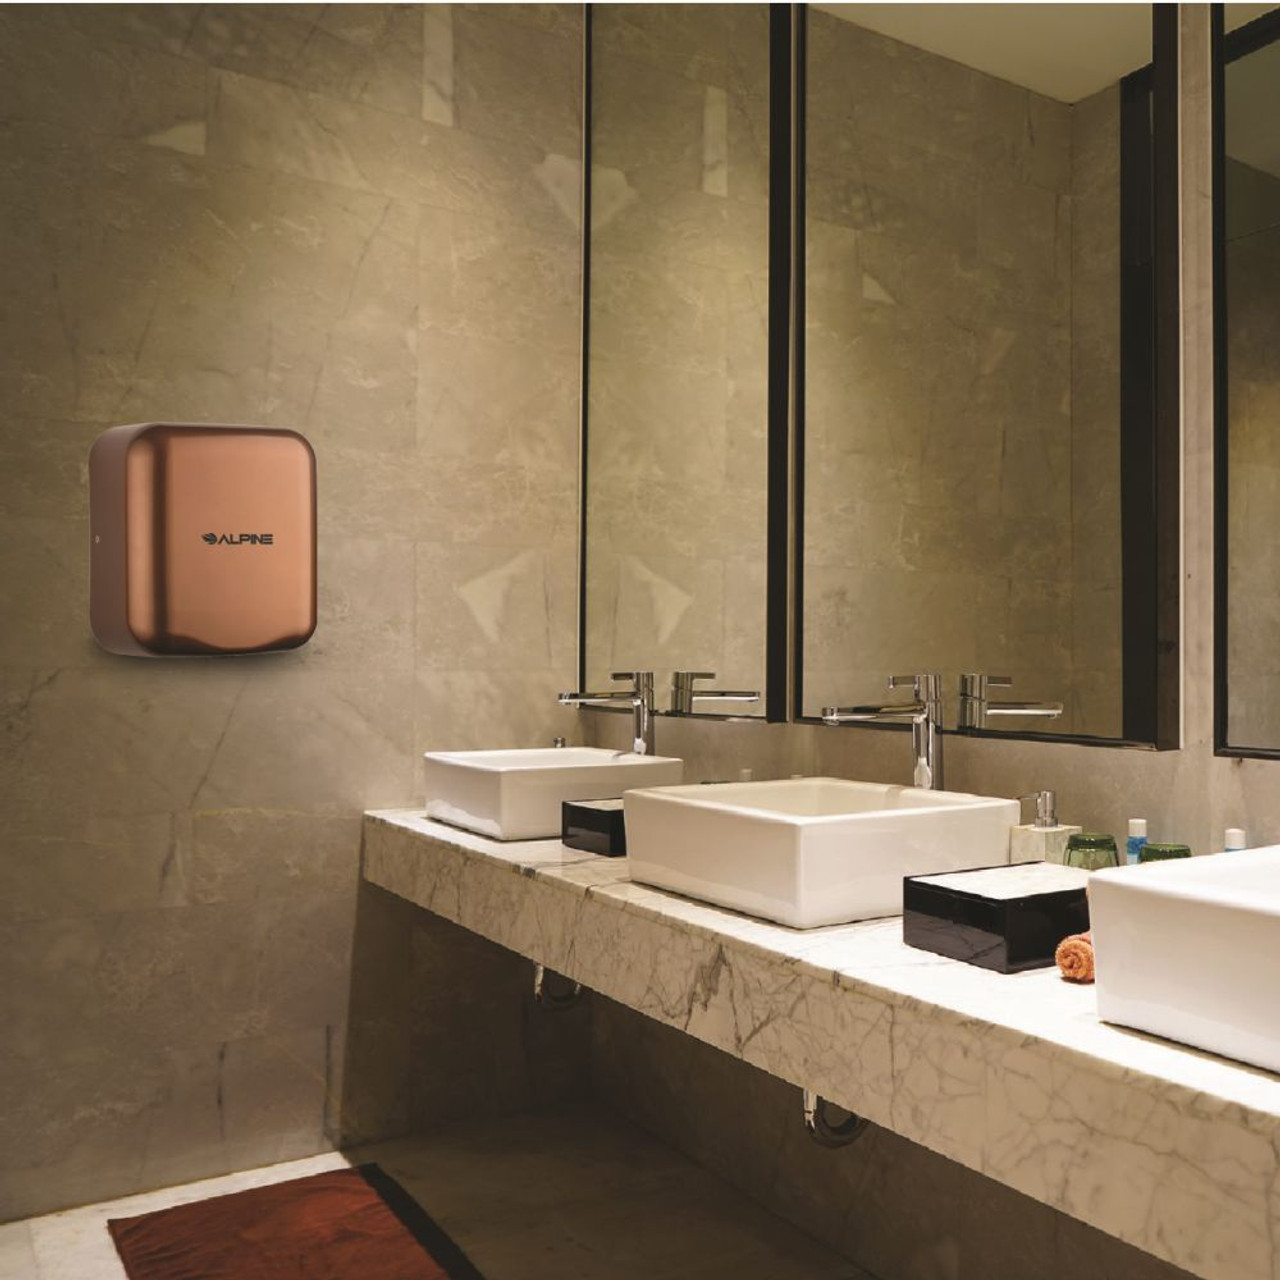 Pick the Coffee Hemlock Hand Dryer to accent your decor.